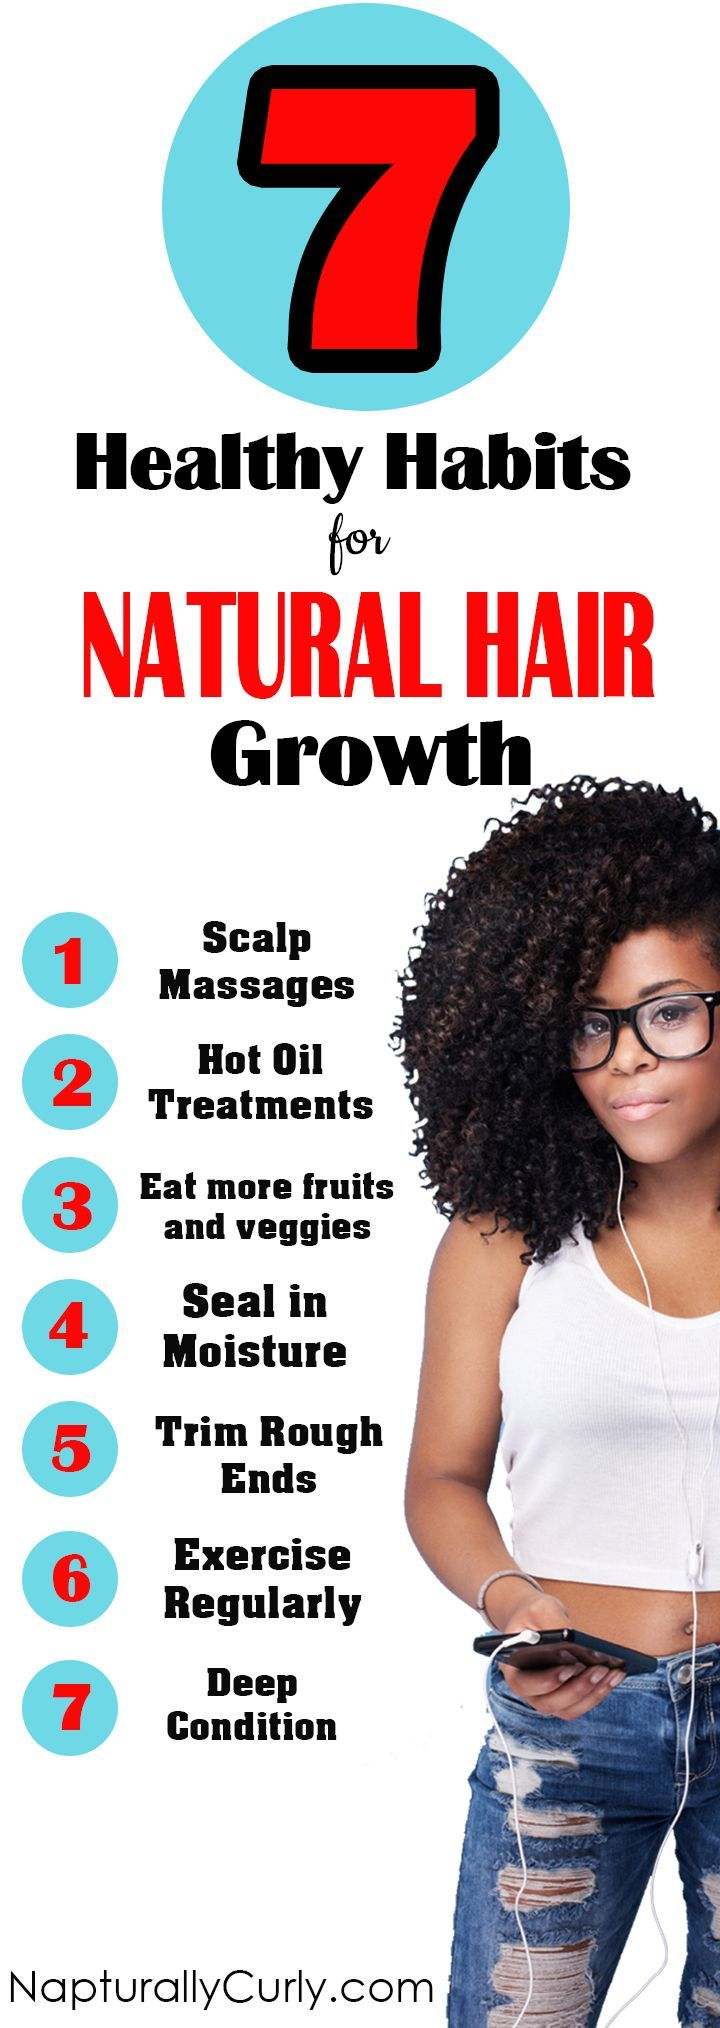 cool Great habits to grow your natural hair longer.... by http://www.danazhairstyles.xyz/natural-curly-hair/great-habits-to-grow-your-natural-hair-longer/